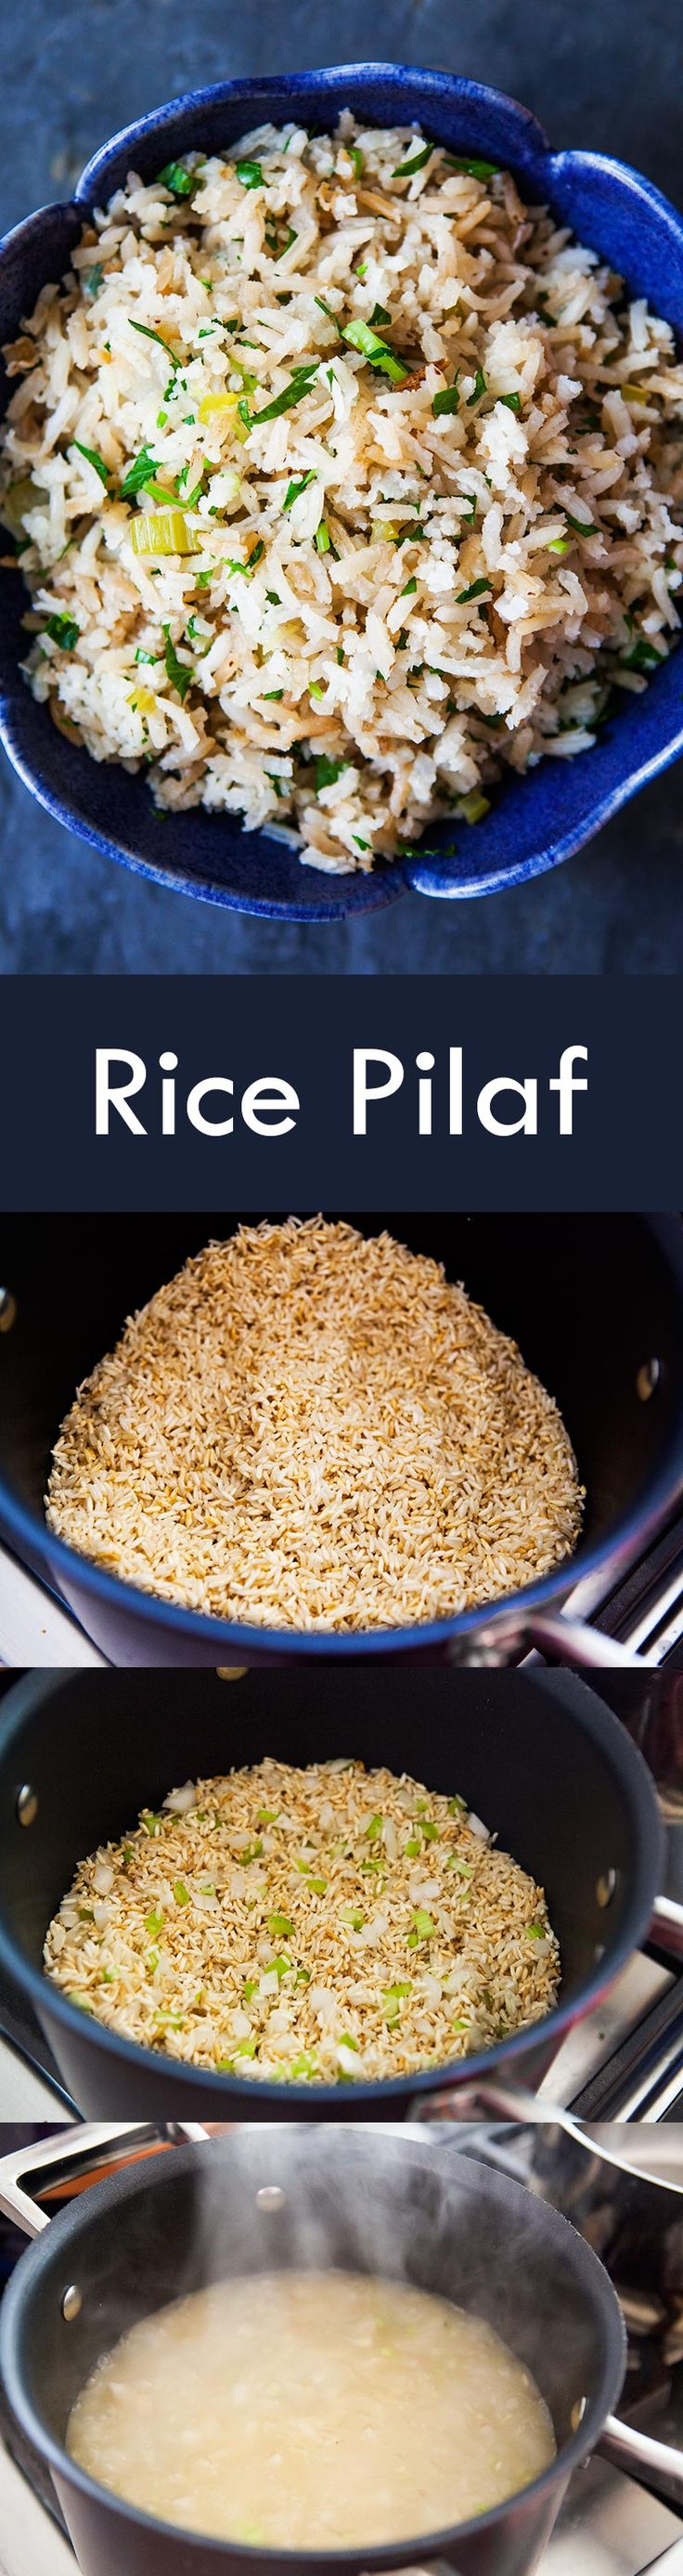 Easy Rice Pilaf! Made with long grain white rice, onion, celery, and stock. Takes only 30 minutes! Great side dish for chicken, pork, or steak. On SimplyRecipes.com